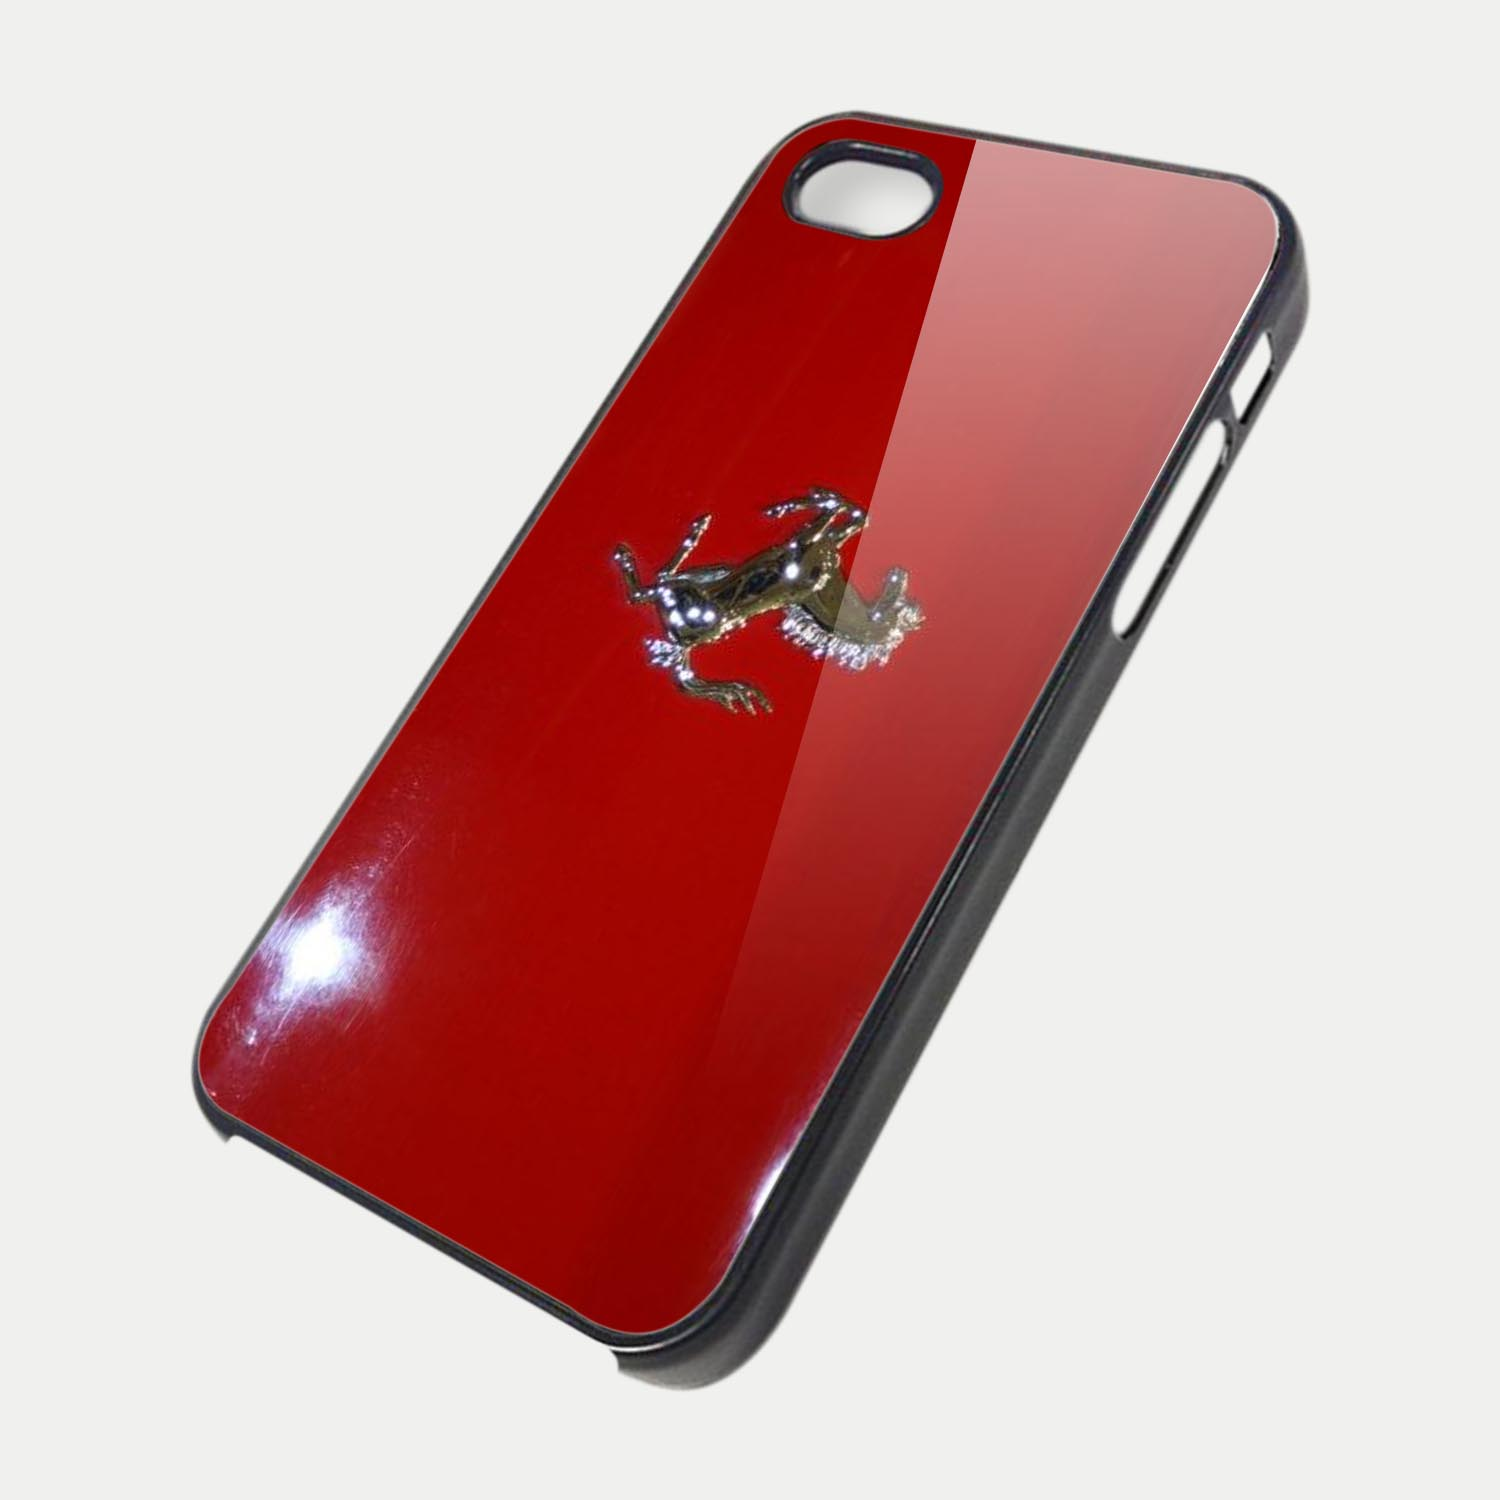 Case Design design phone case with pictures : Displaying 17u0026gt; Images For - Ferrari Phone Case...